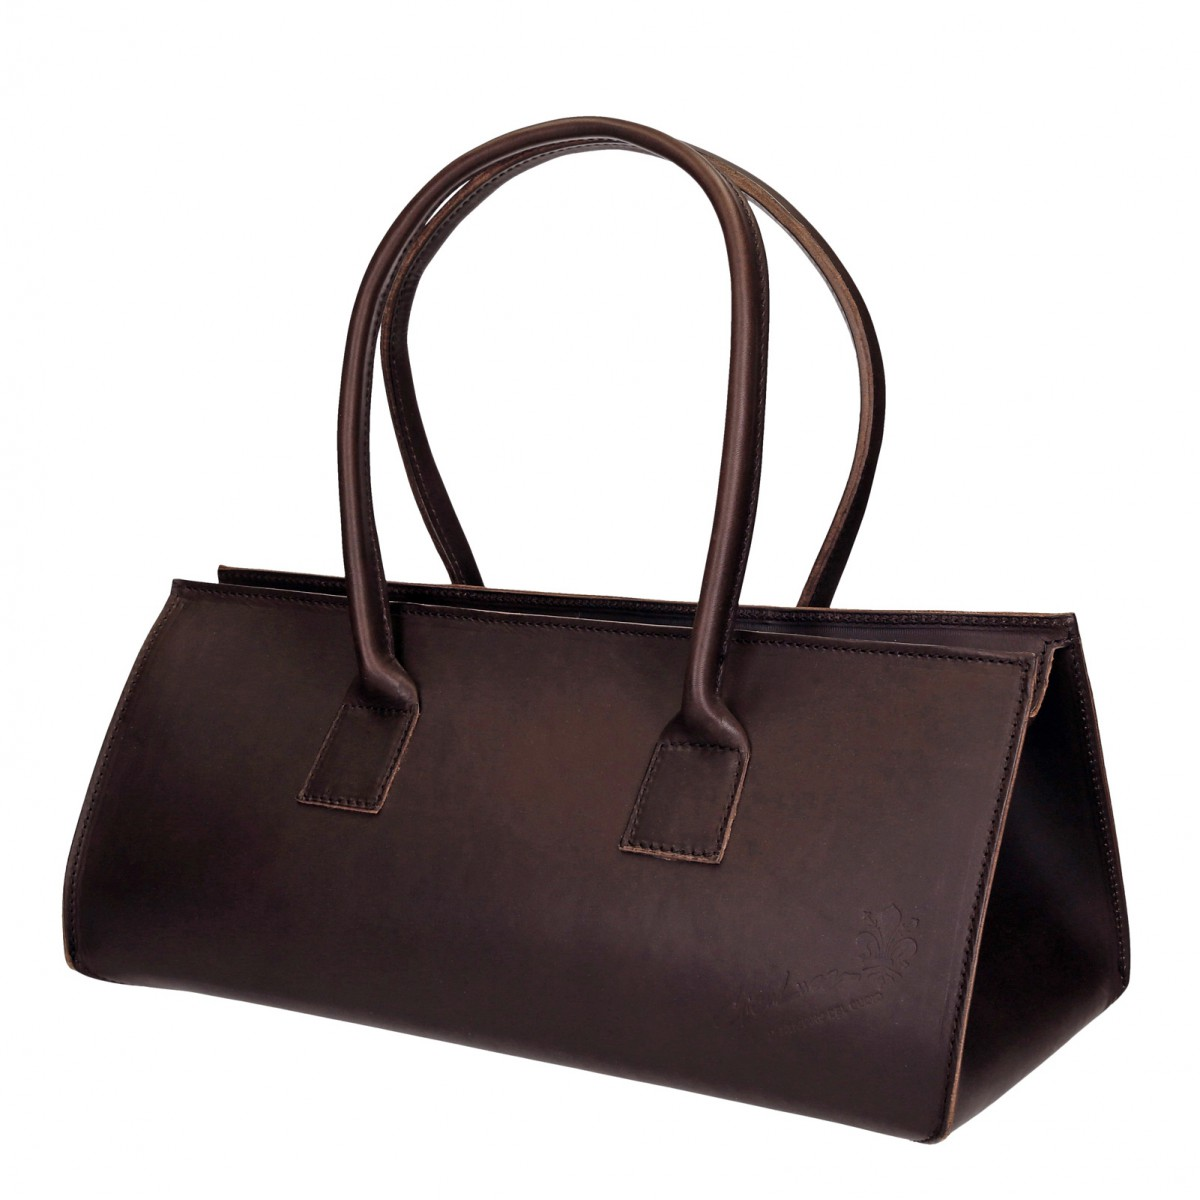 body Large Brown Canada Leather Handbag Cross The largest vacuum system in the world. With a total of kilometres of piping under vacuum, the vacuum system of the LHC is among the largest in the world. The insulating vacuum.